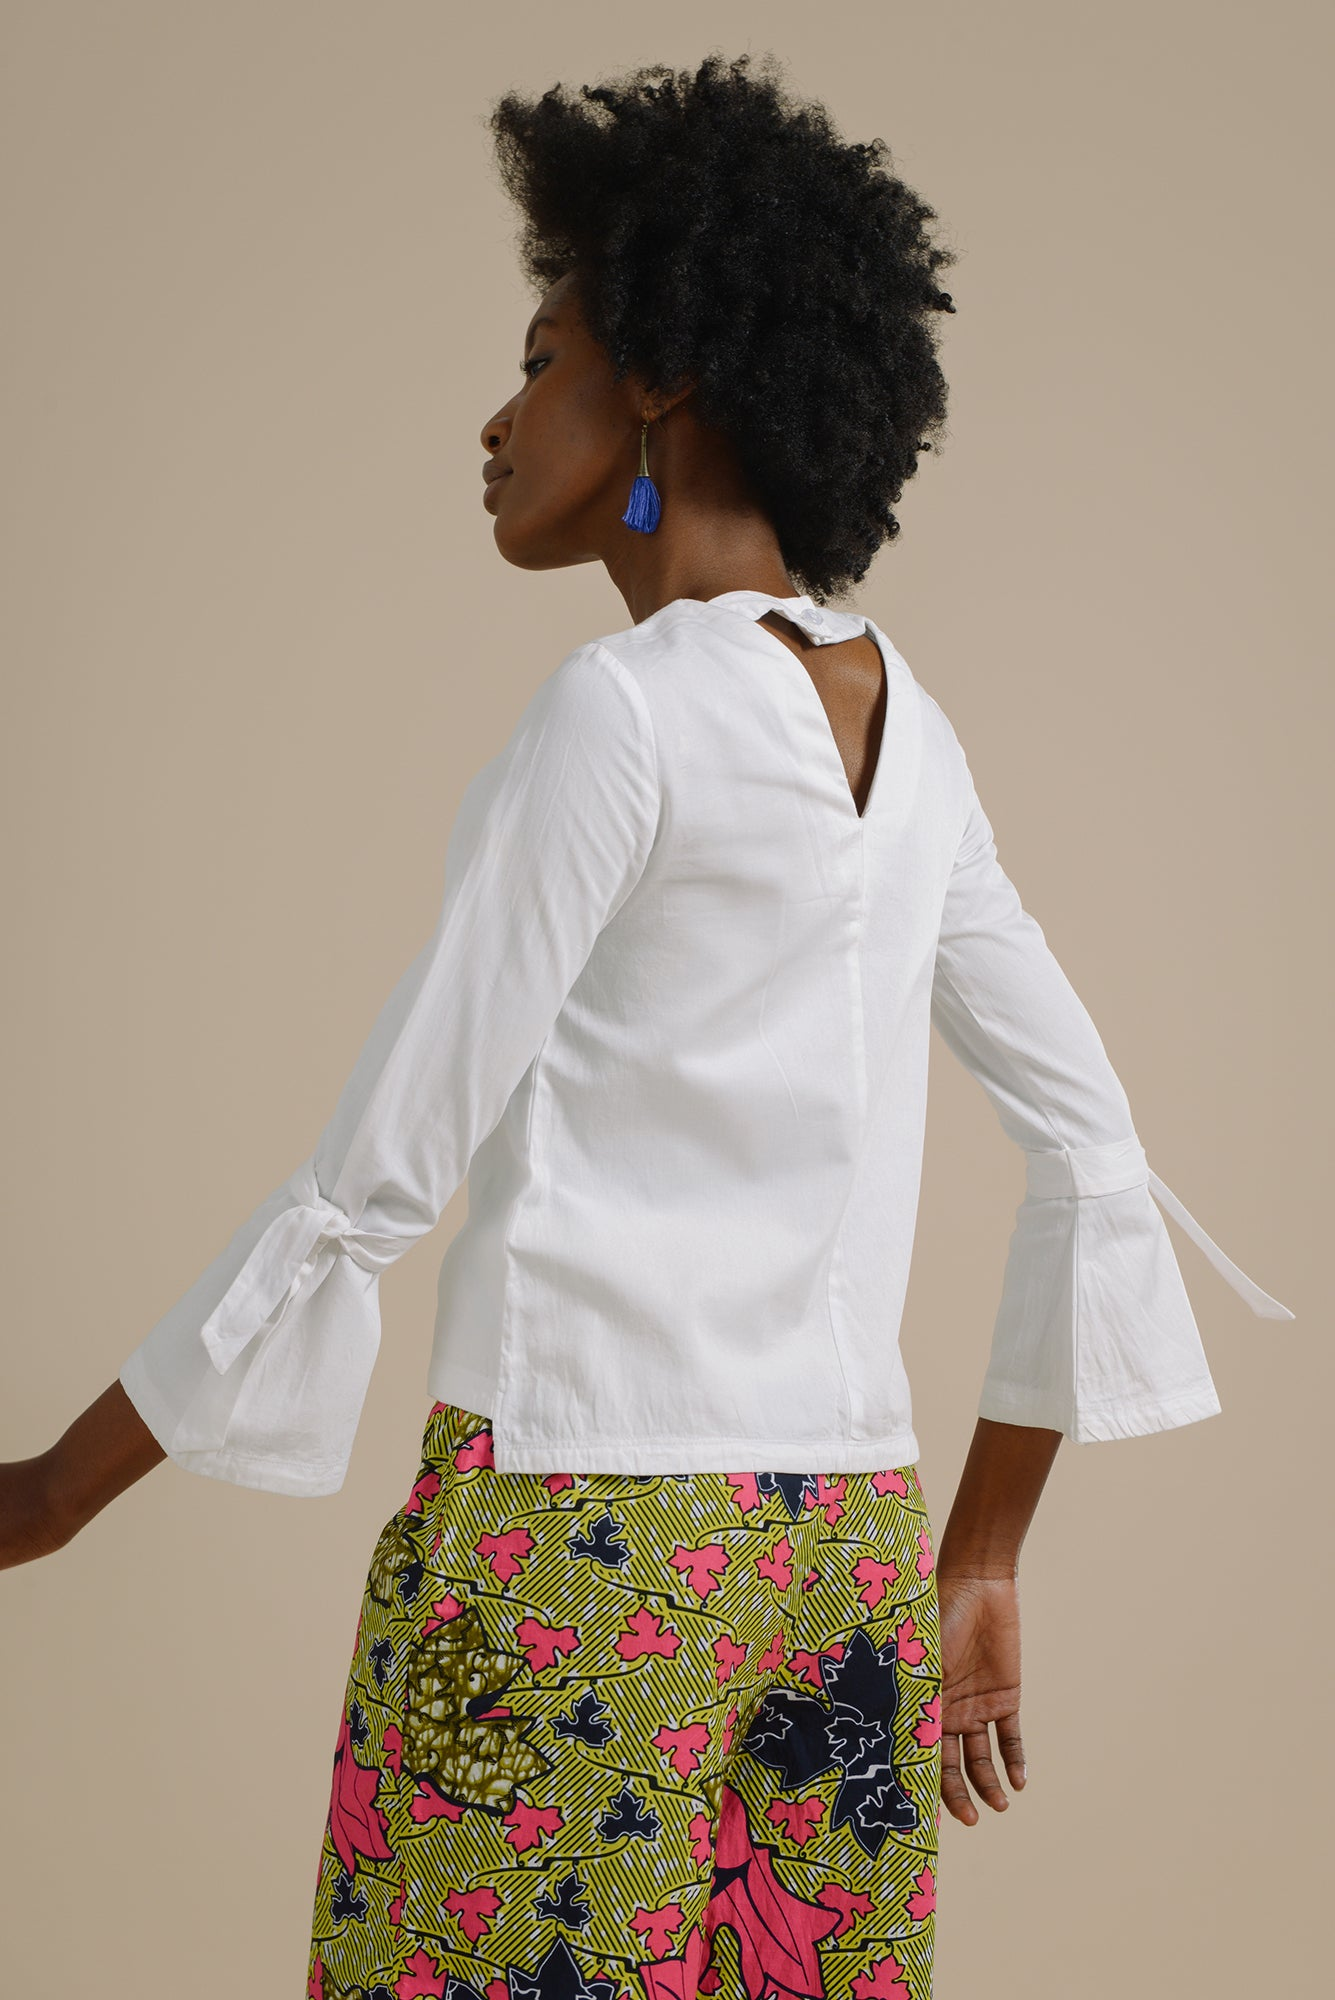 cc1db187d281f4 ... Likoma long bell sleeve top with V back in White Organic Cotton - Mayamiko  Sustainable Fashion